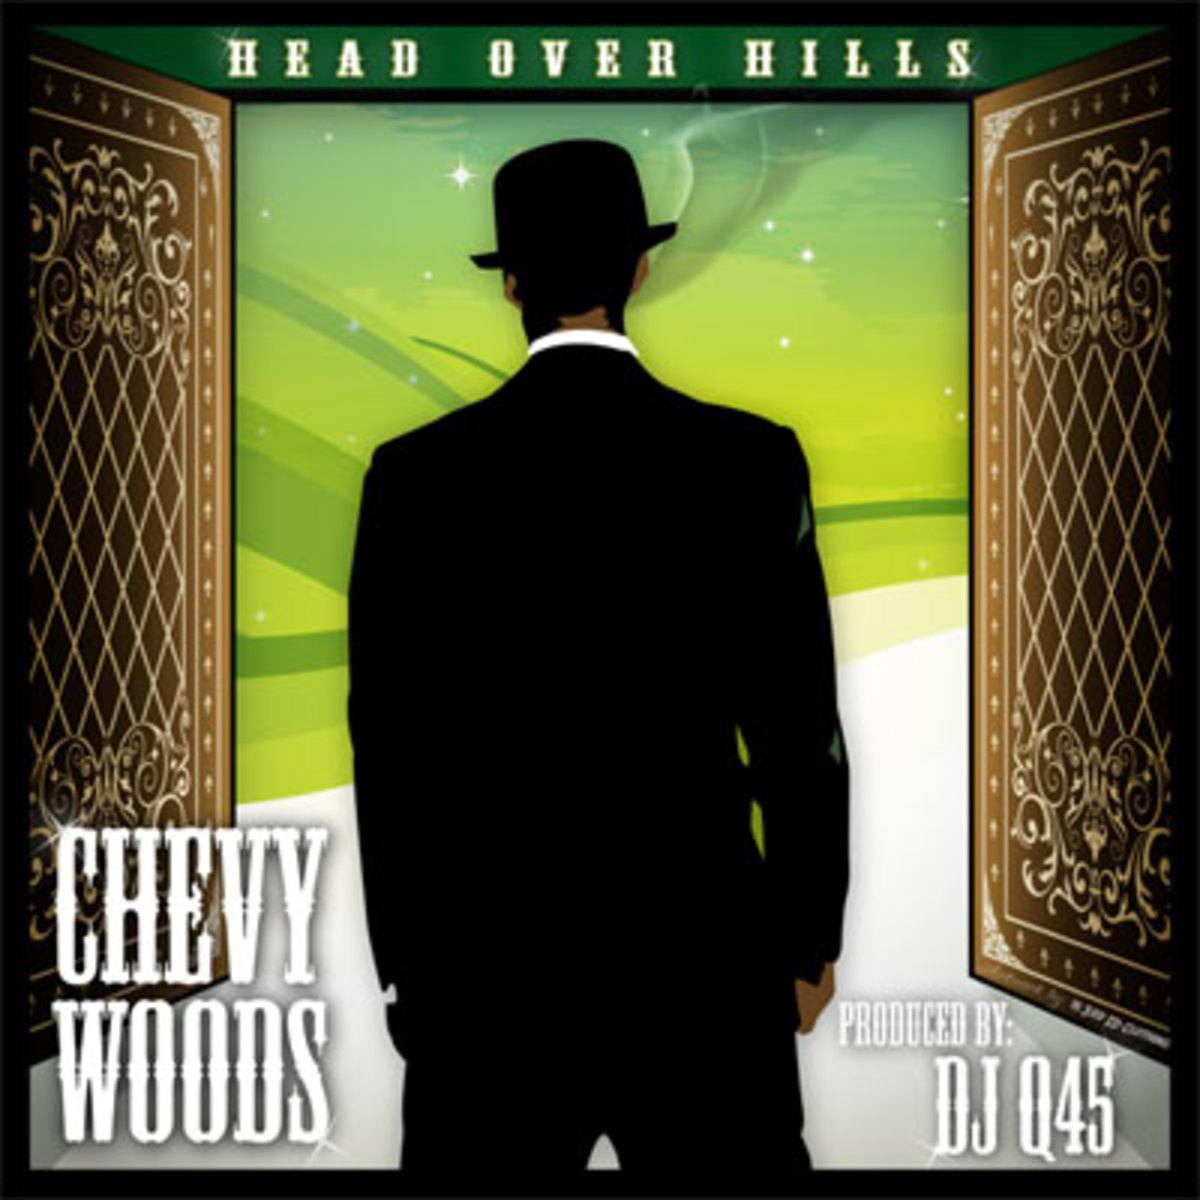 chevywoods-headoverheels.jpg